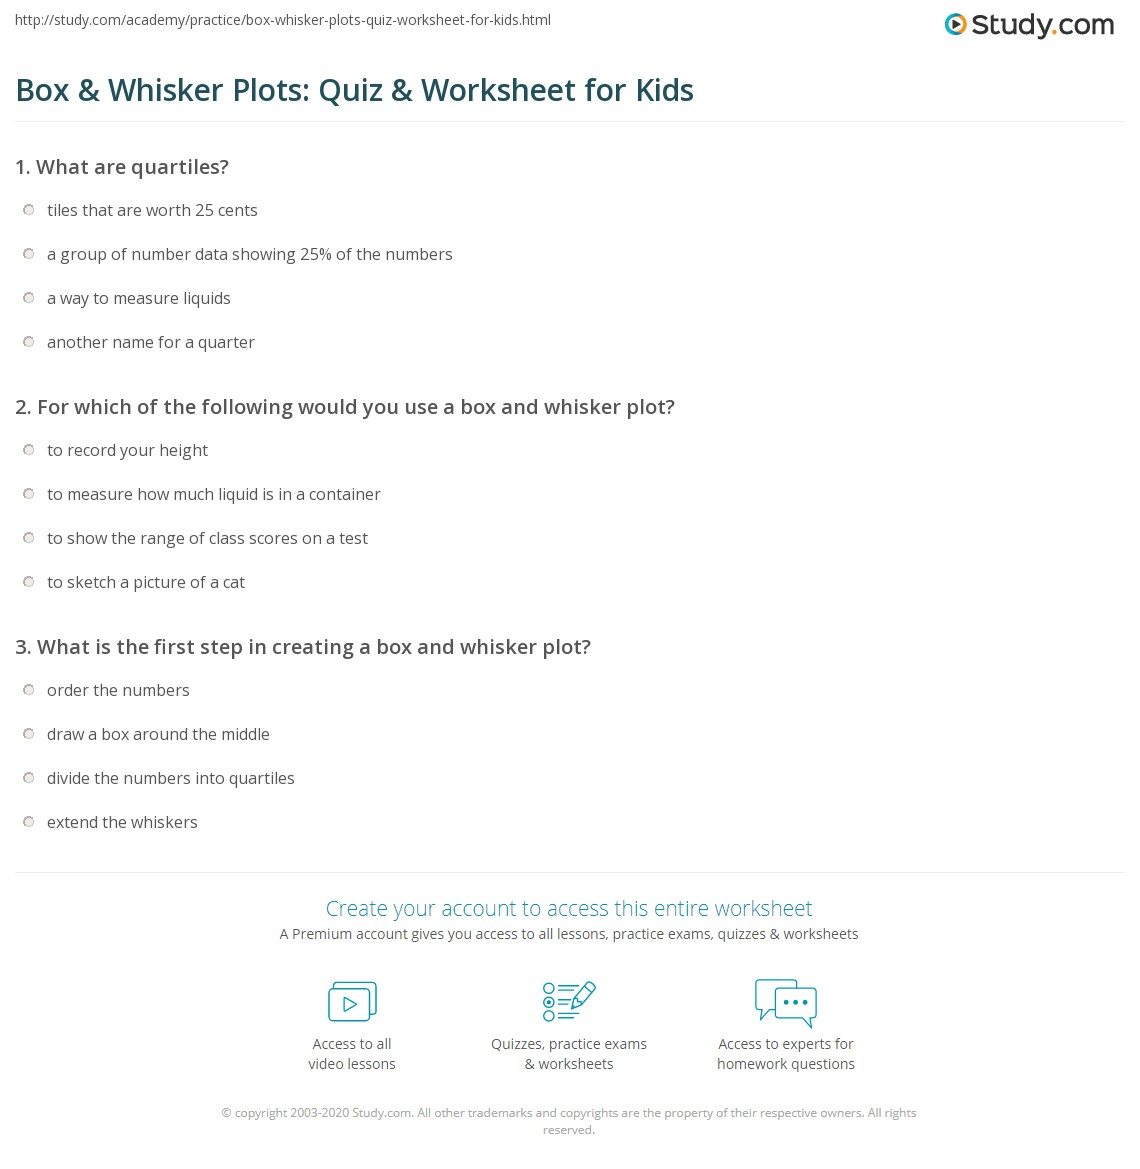 Box Whisker Plots Quiz Worksheet for Kids – Box and Whisker Plot Worksheets